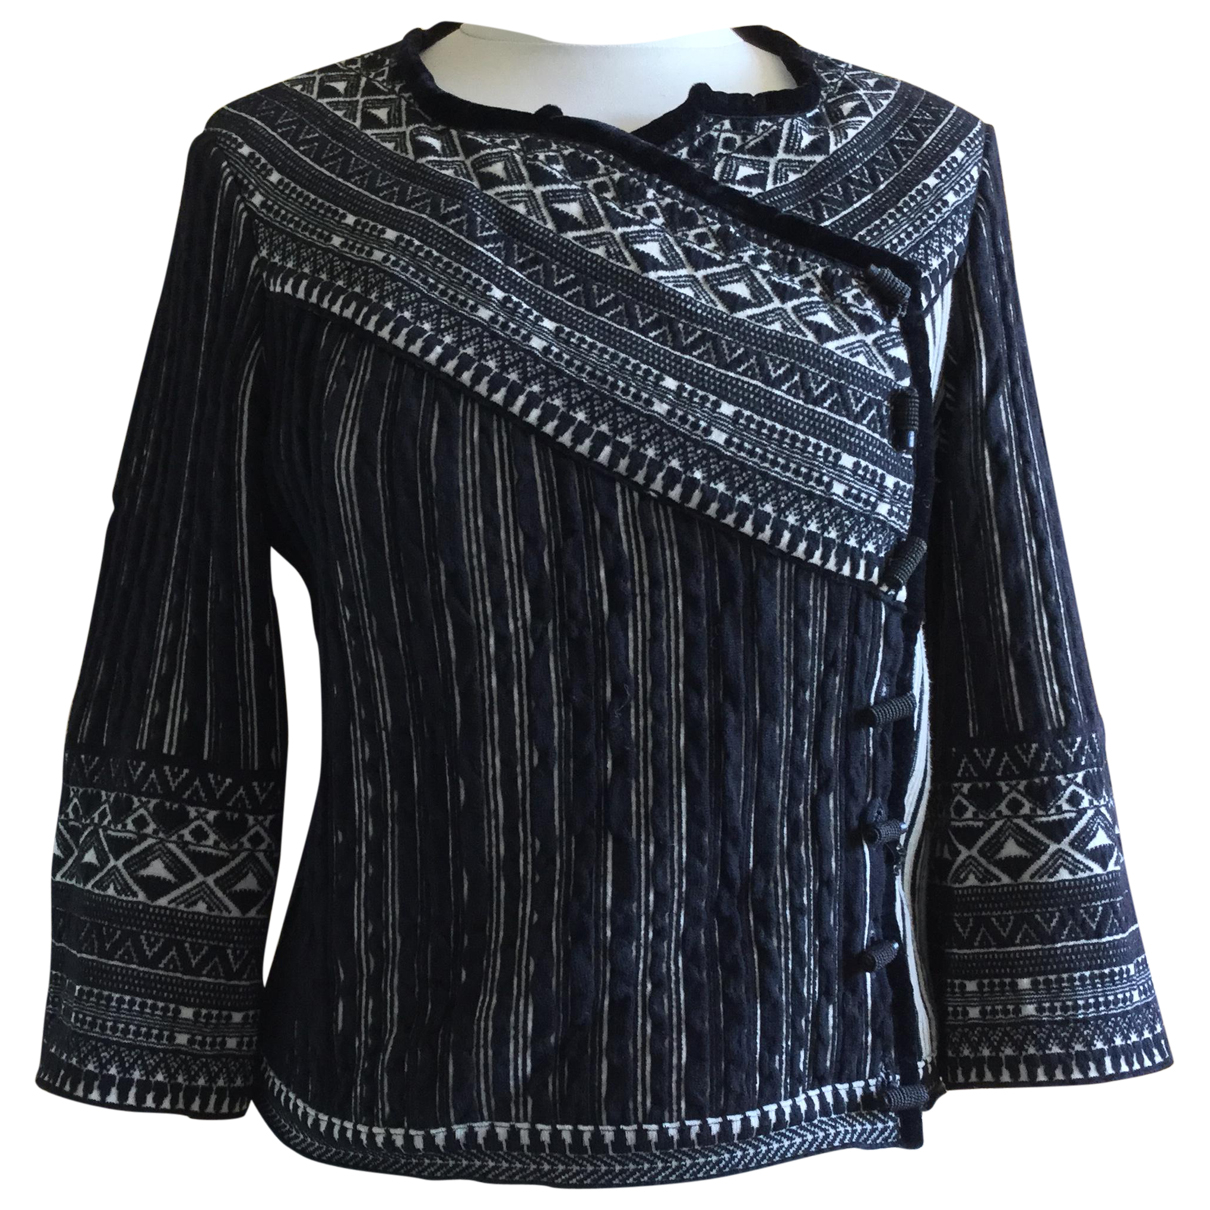 Jean Paul Gaultier N Black Wool Knitwear for Women L International